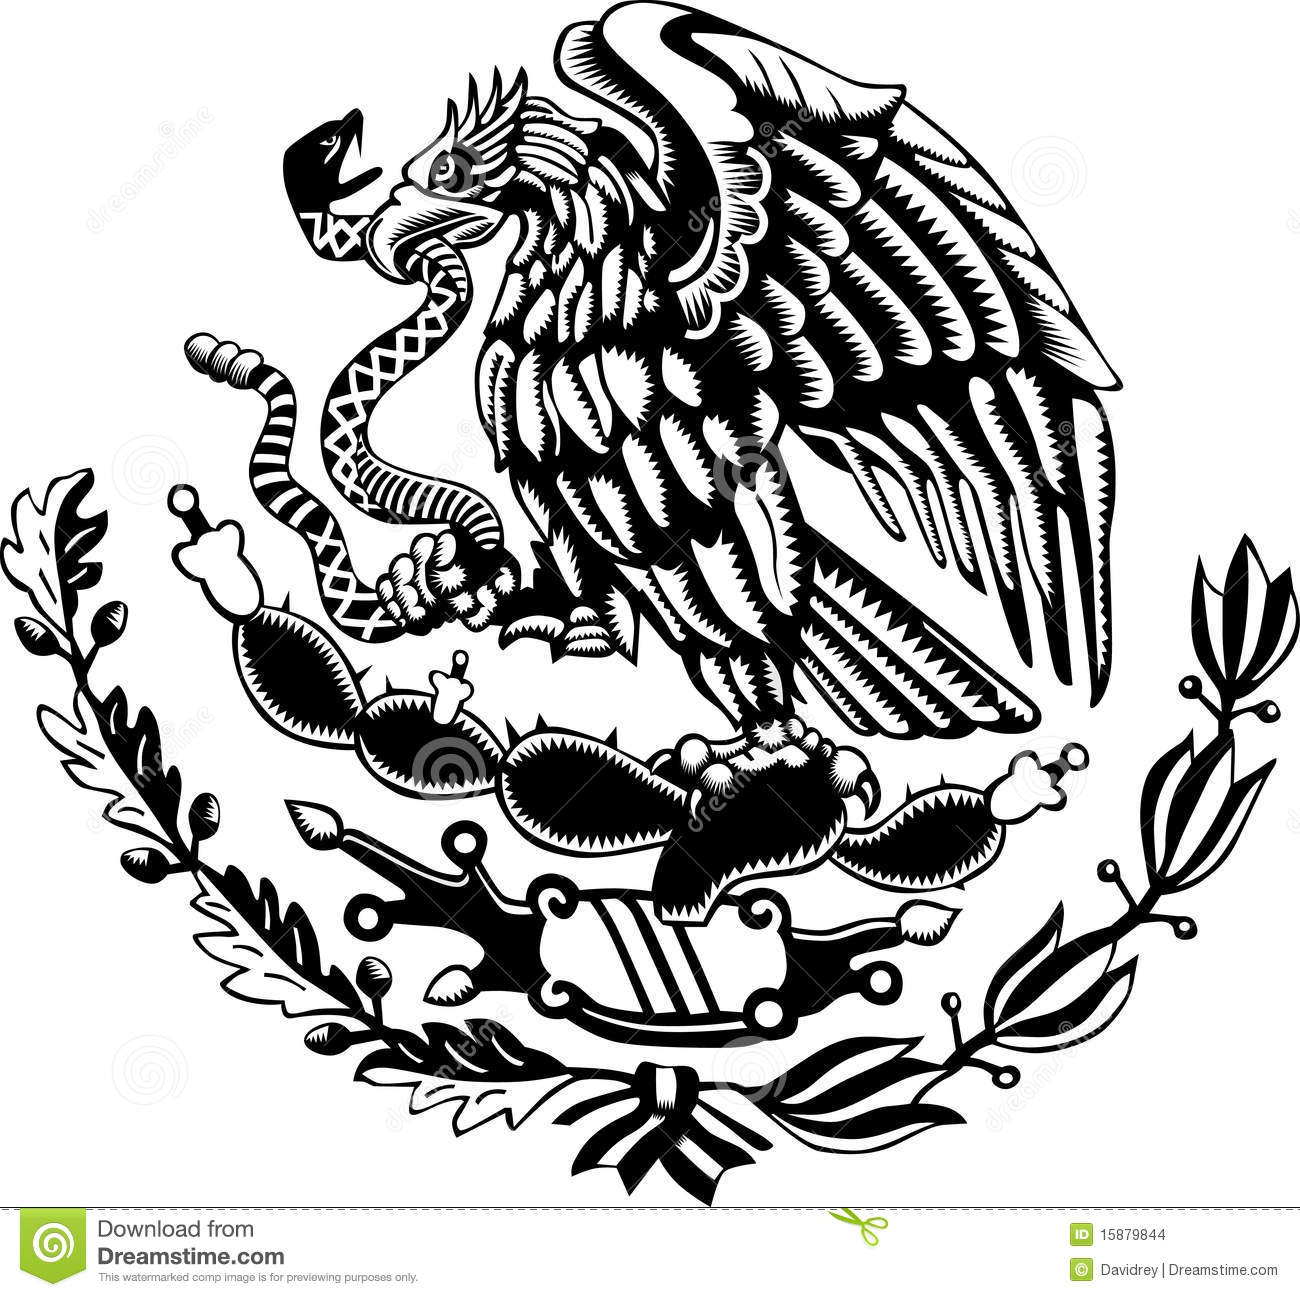 picture about Mexican Flag Eagle Printable called Mexican Flag Eagle Printable - iwate-kokyo